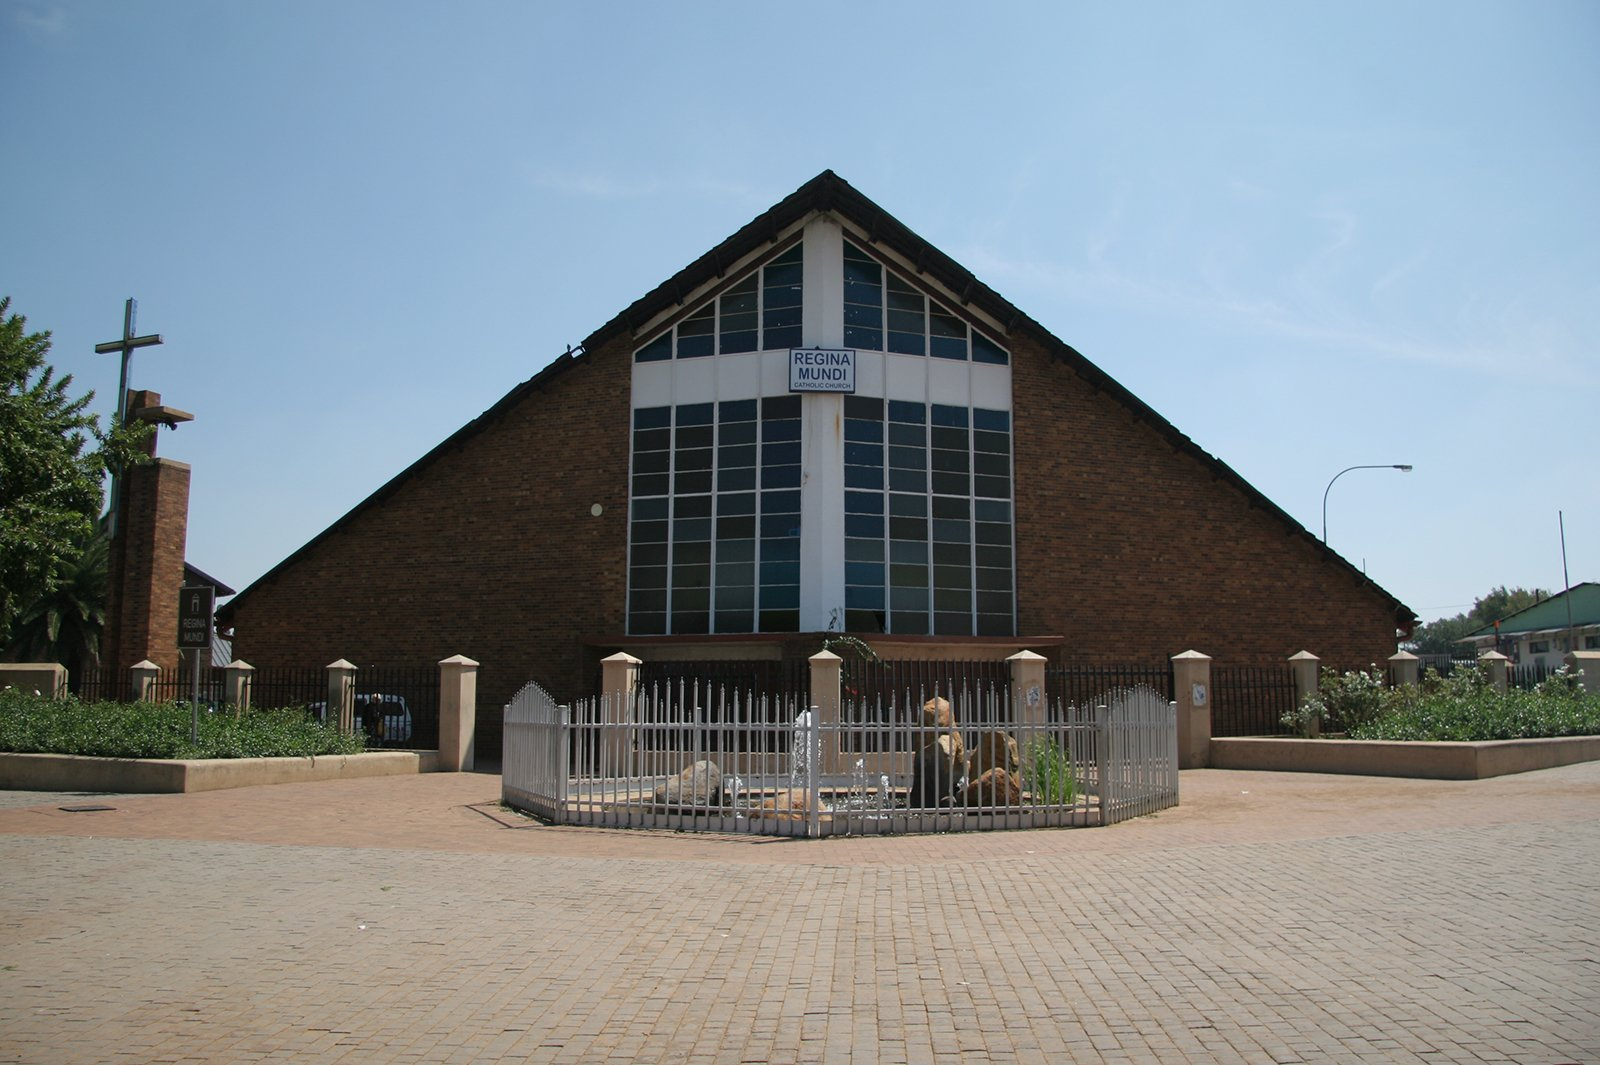 regina-mundi-catholic-church-south-africa-fab-magazine